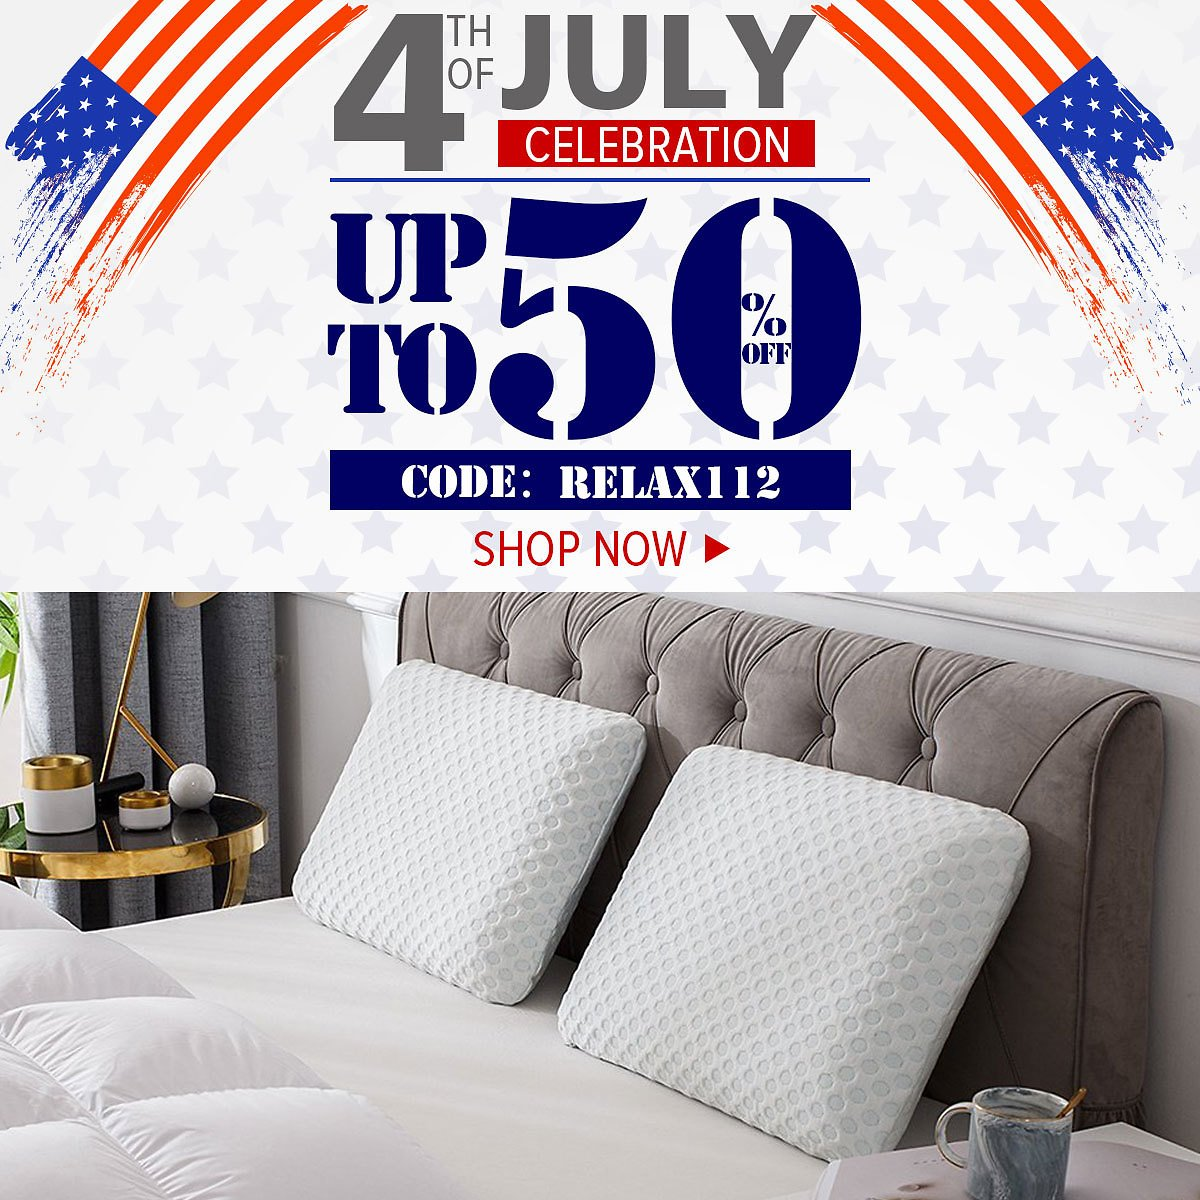 4th of July Up to 50% Off